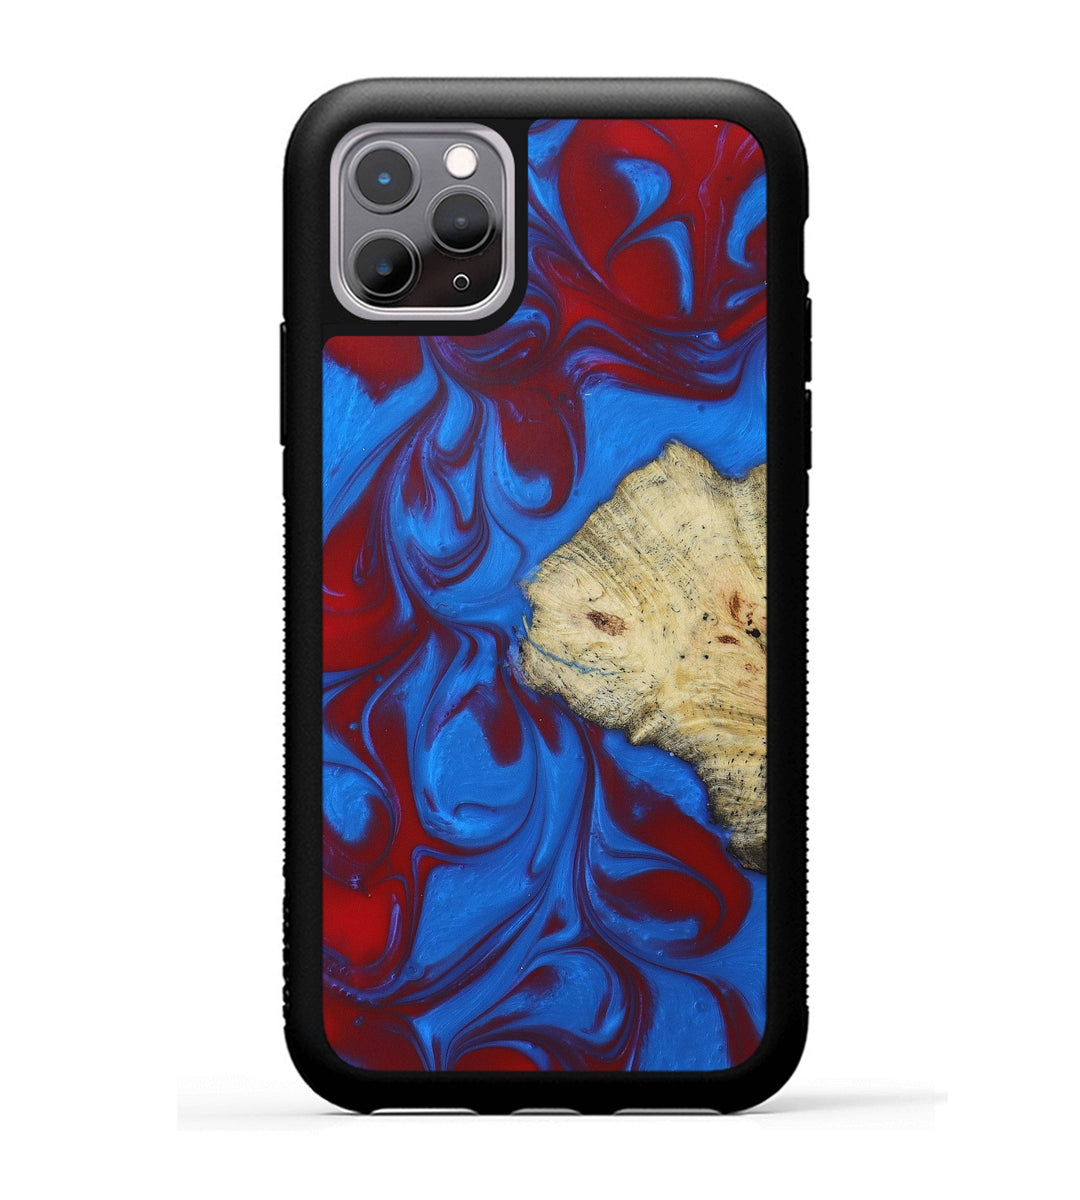 iPhone 11 Pro Wood+Resin Phone Case - Durali (Blue & Red, 399479)